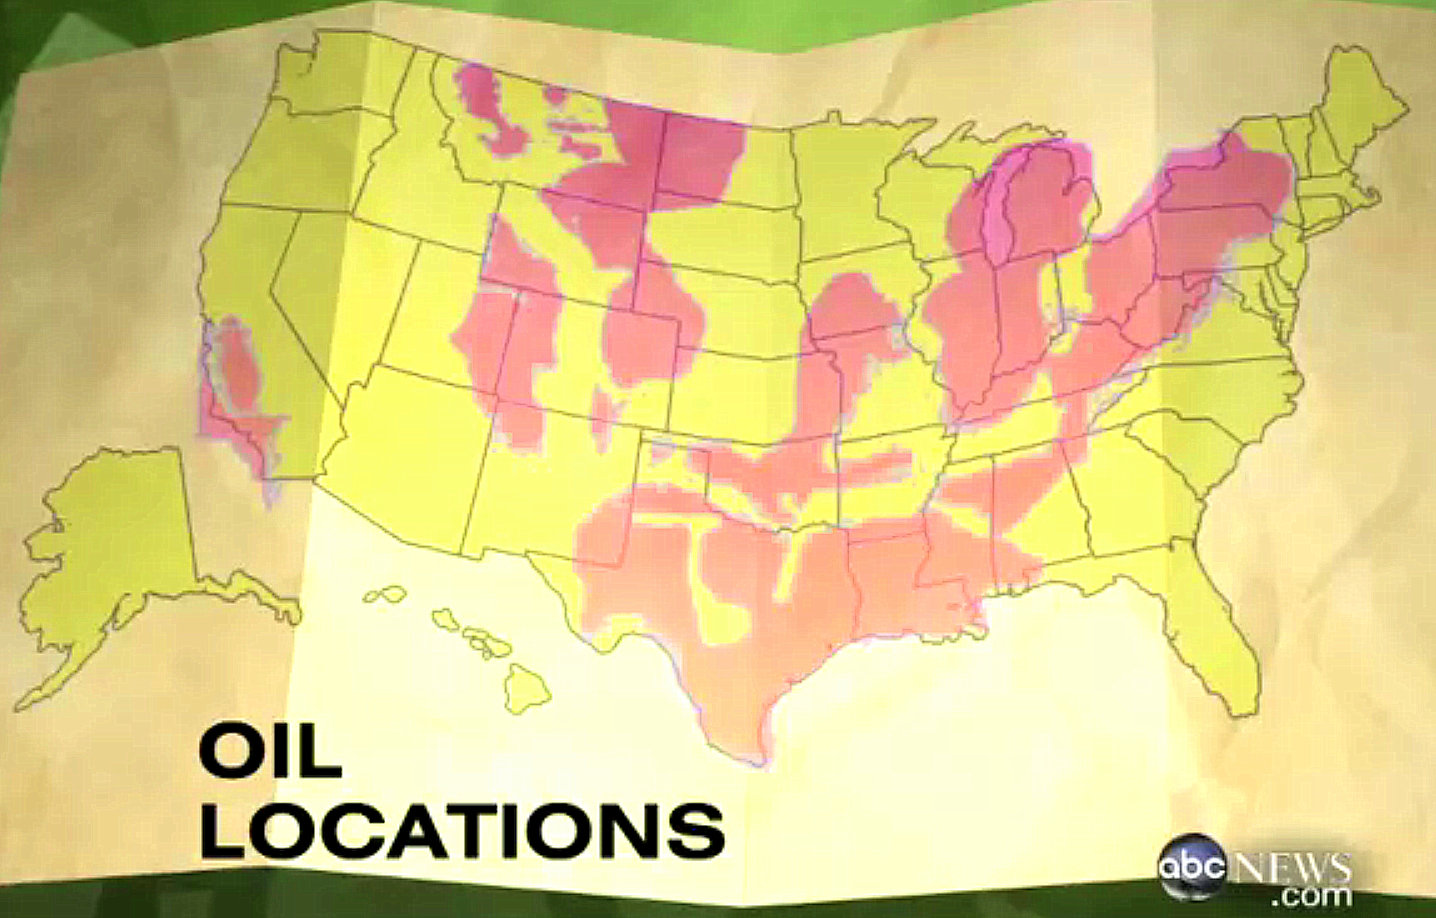 THE HOCKEY SCHTICK ABC News US has oil reserves greater than the